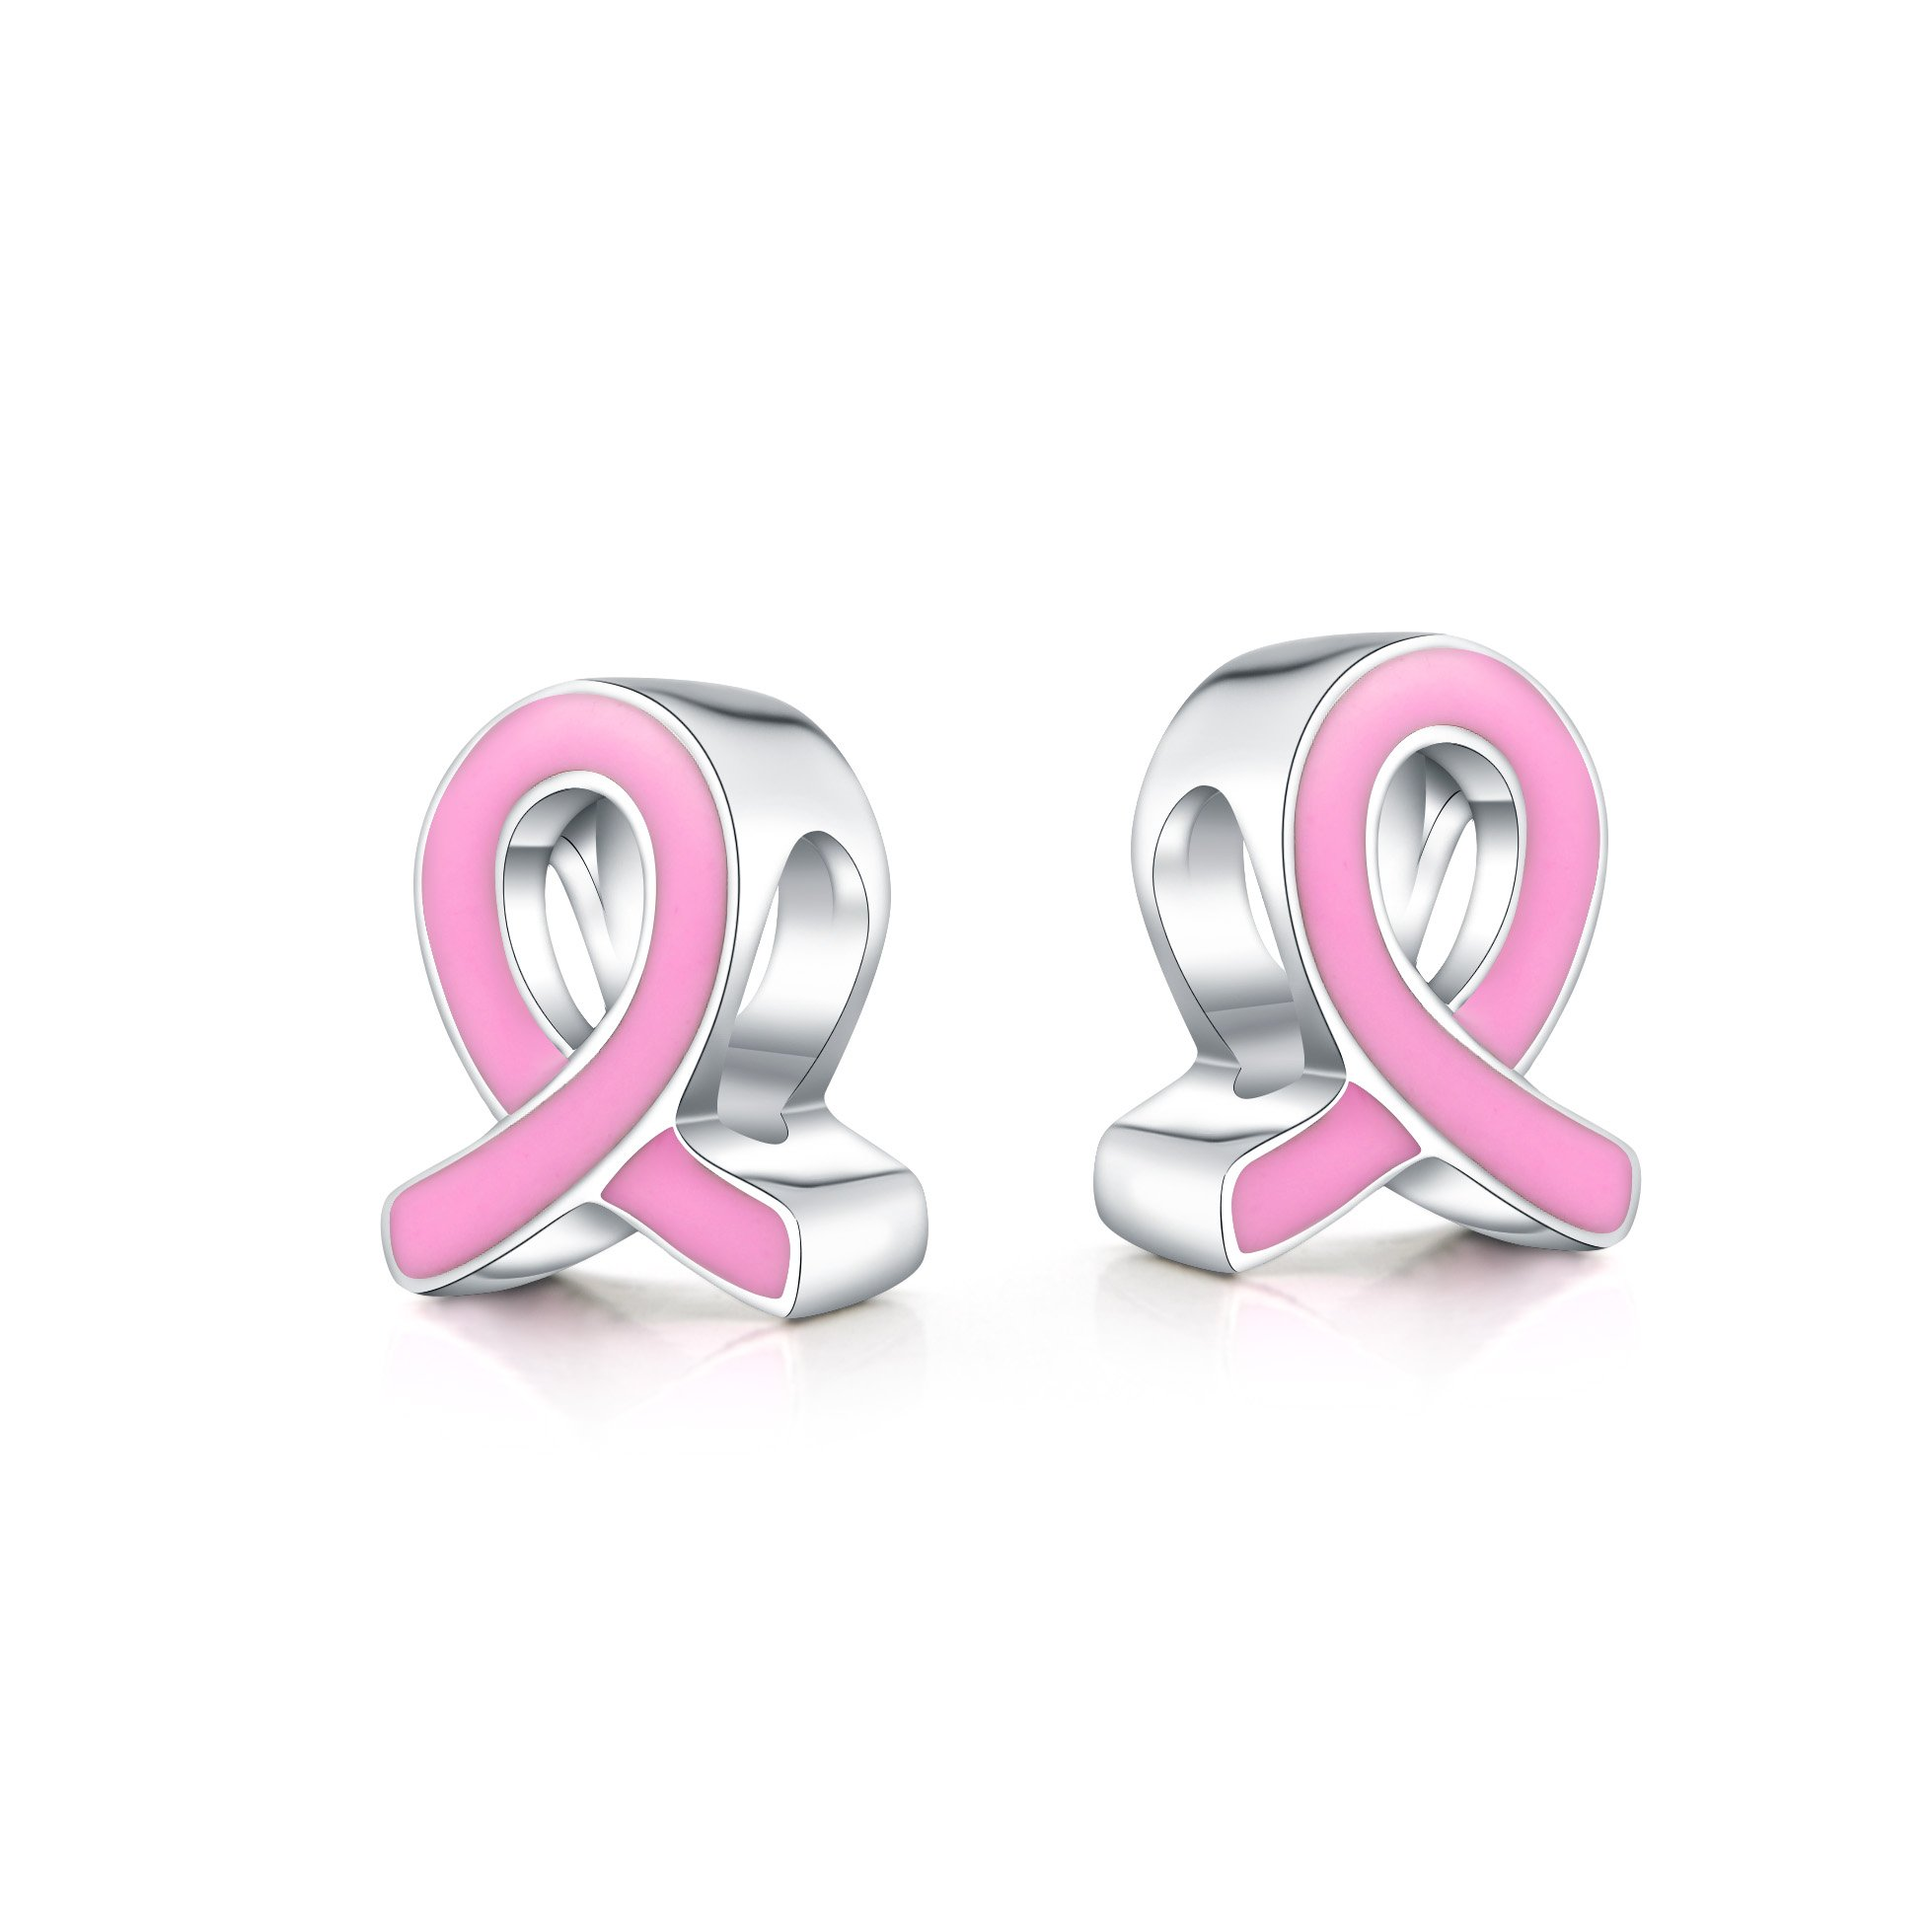 Pink Ribbon 925 Sterling Silver Bead Charm for Charm Bracelet Chain or Pendant Necklace Chain